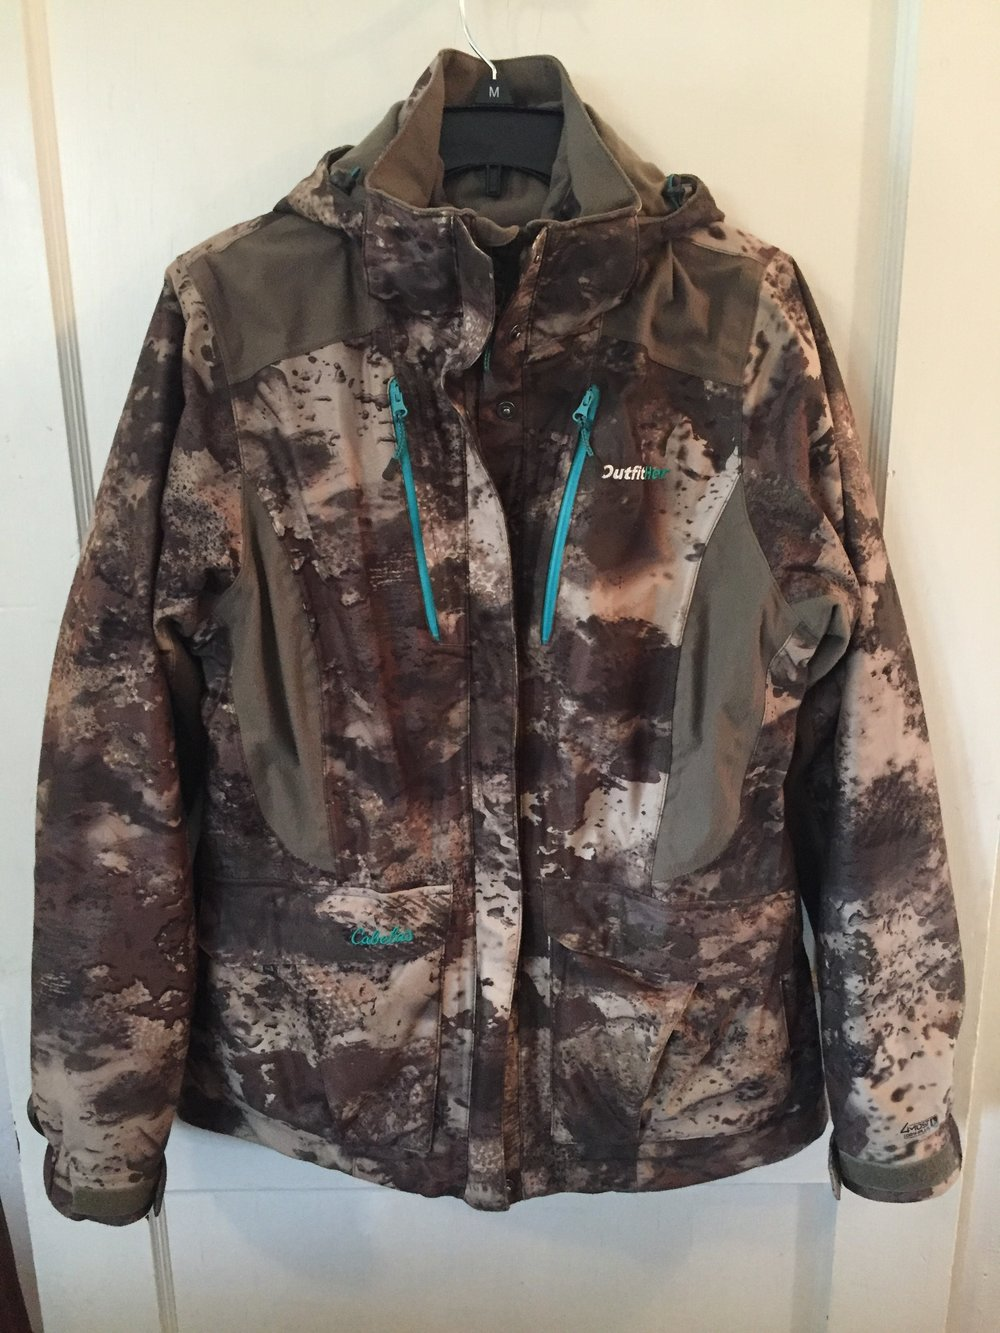 outer-jacket.jpg